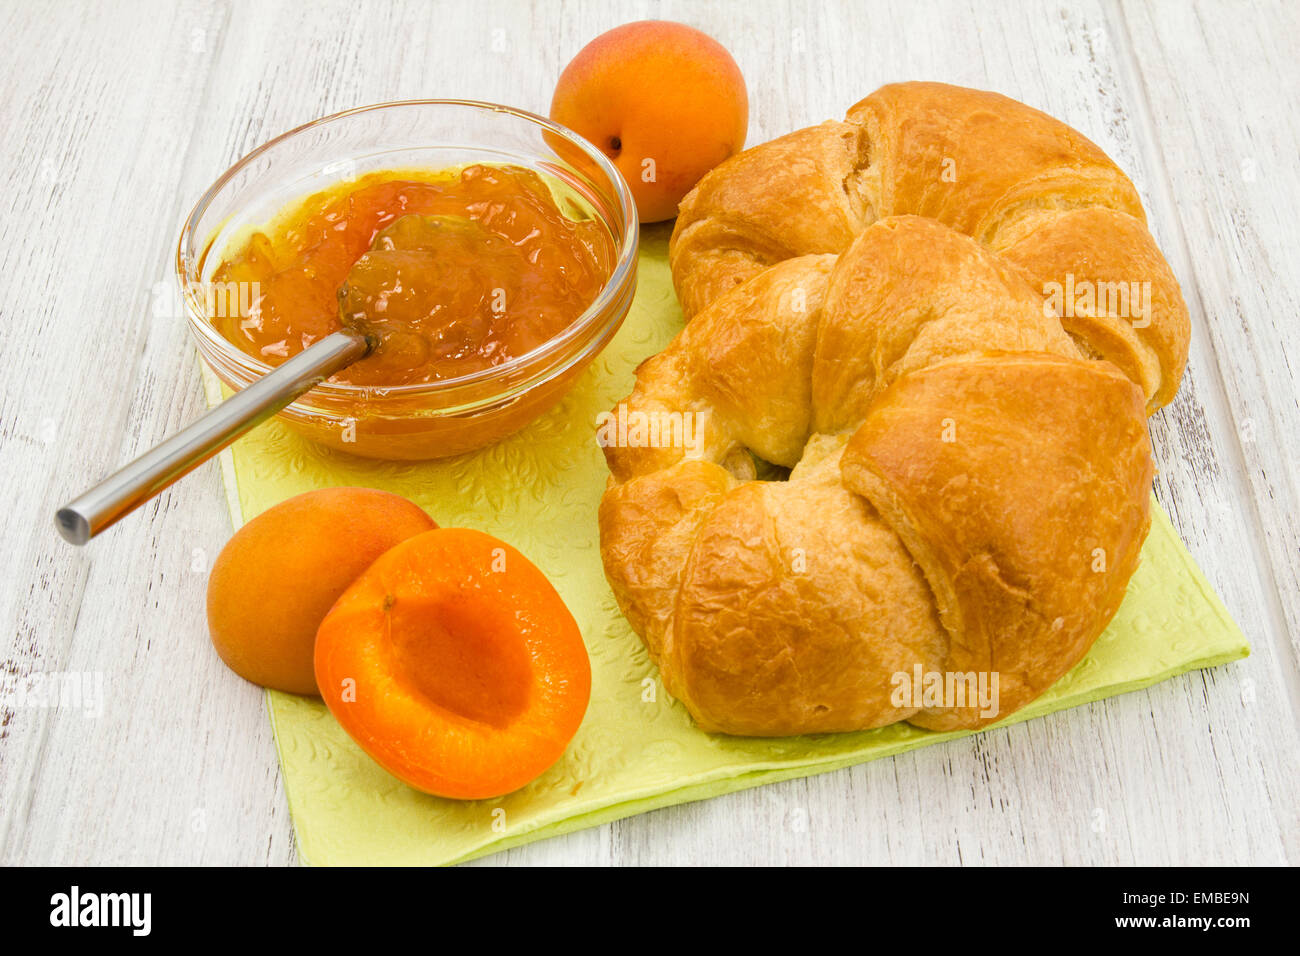 Apricot conserve, fresh apricots and croissants on white wood background - Stock Image